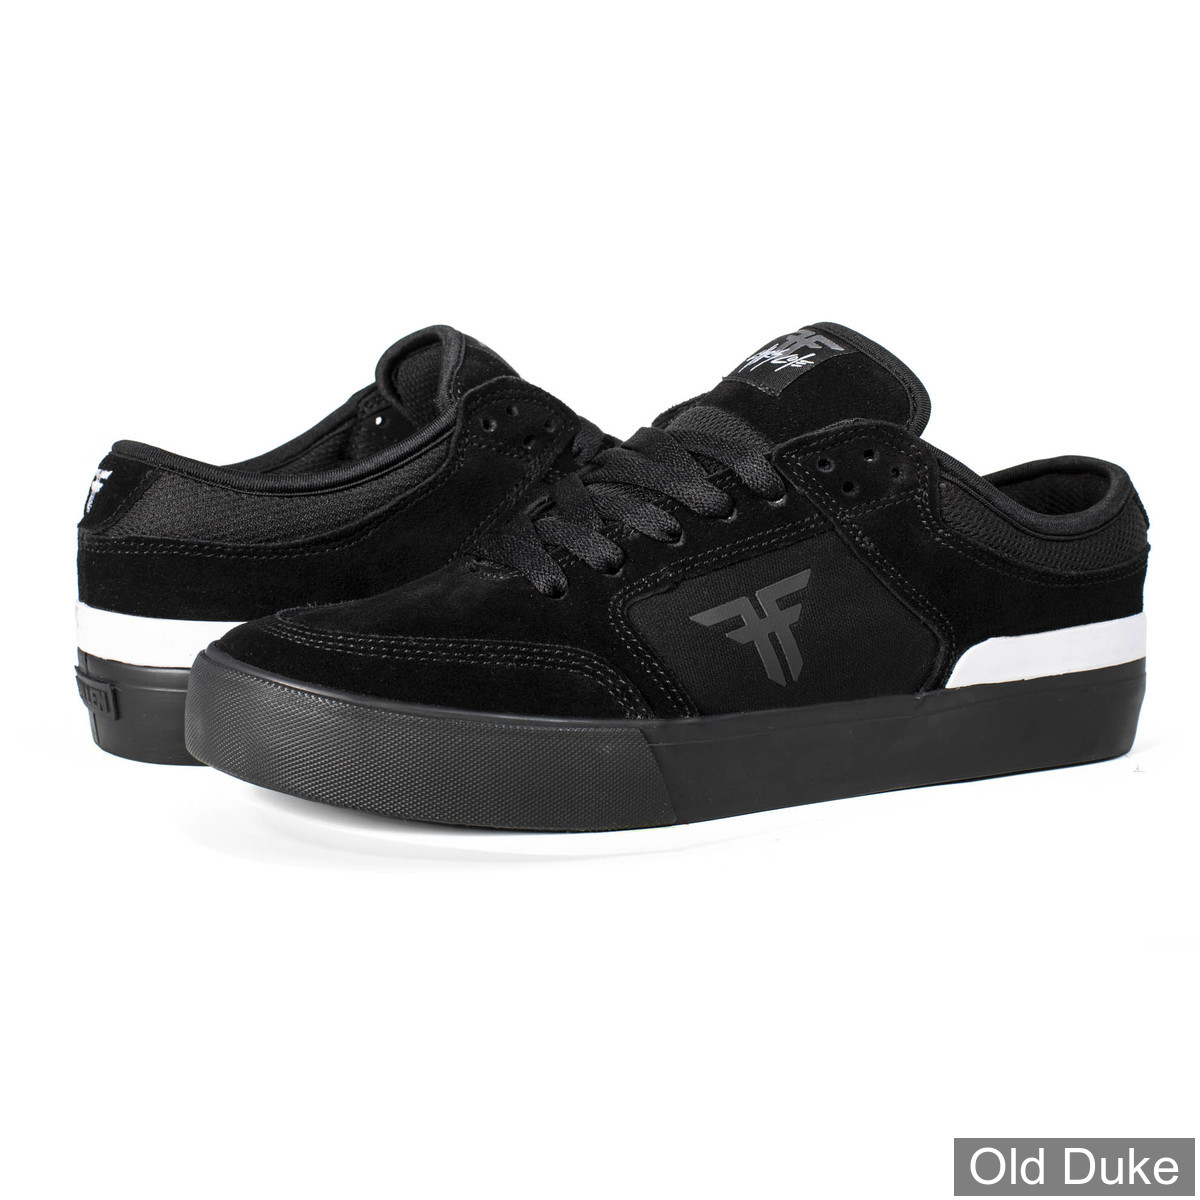 SKATE SHOES - FALLEN - RIPPER - BLACK BLACK WHITE